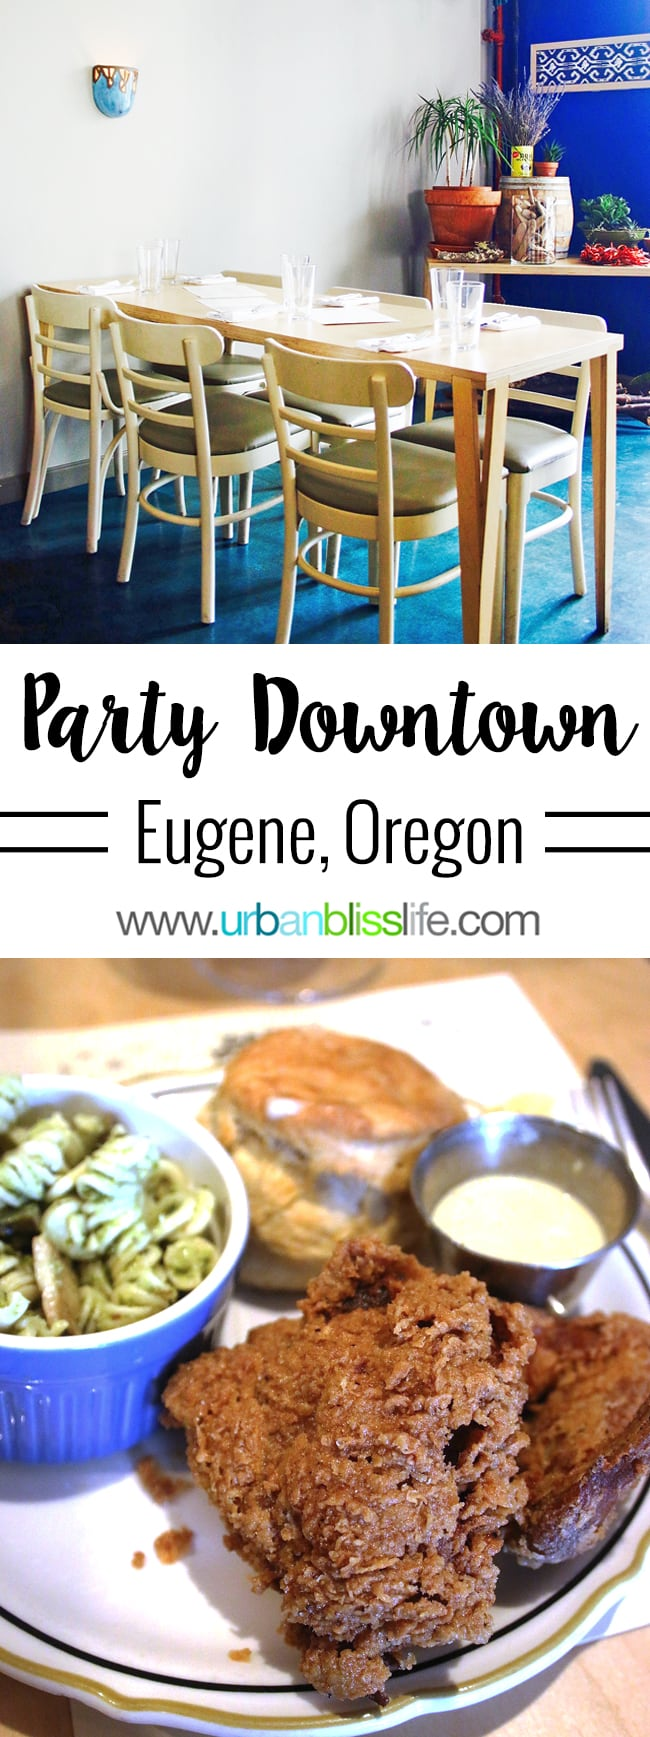 Party Downtown restaurant in Eugene, Oregon. Food Travel Bliss on UrbanBlissLife.com